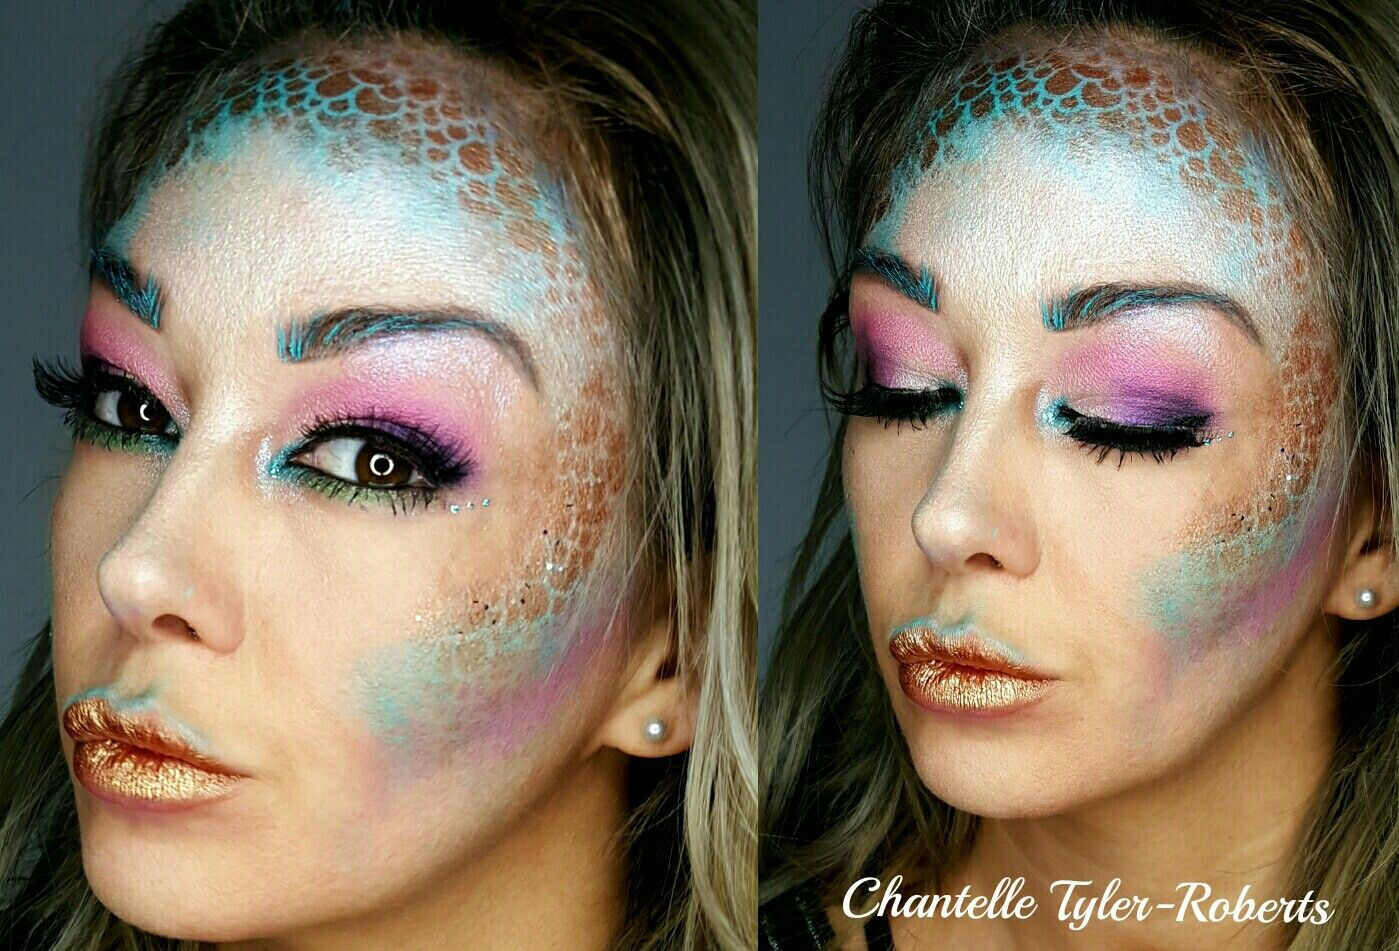 This was my first play with my paints when i got my kit i called it mermaid i did rainbow eyemake up but i will defo go back and do a mermaid 2 at some point as i progress #mermajd #mua #bodyart #faceart #facepaint #dupemag #artist #makeupartist #artisticmakeup  #sfx